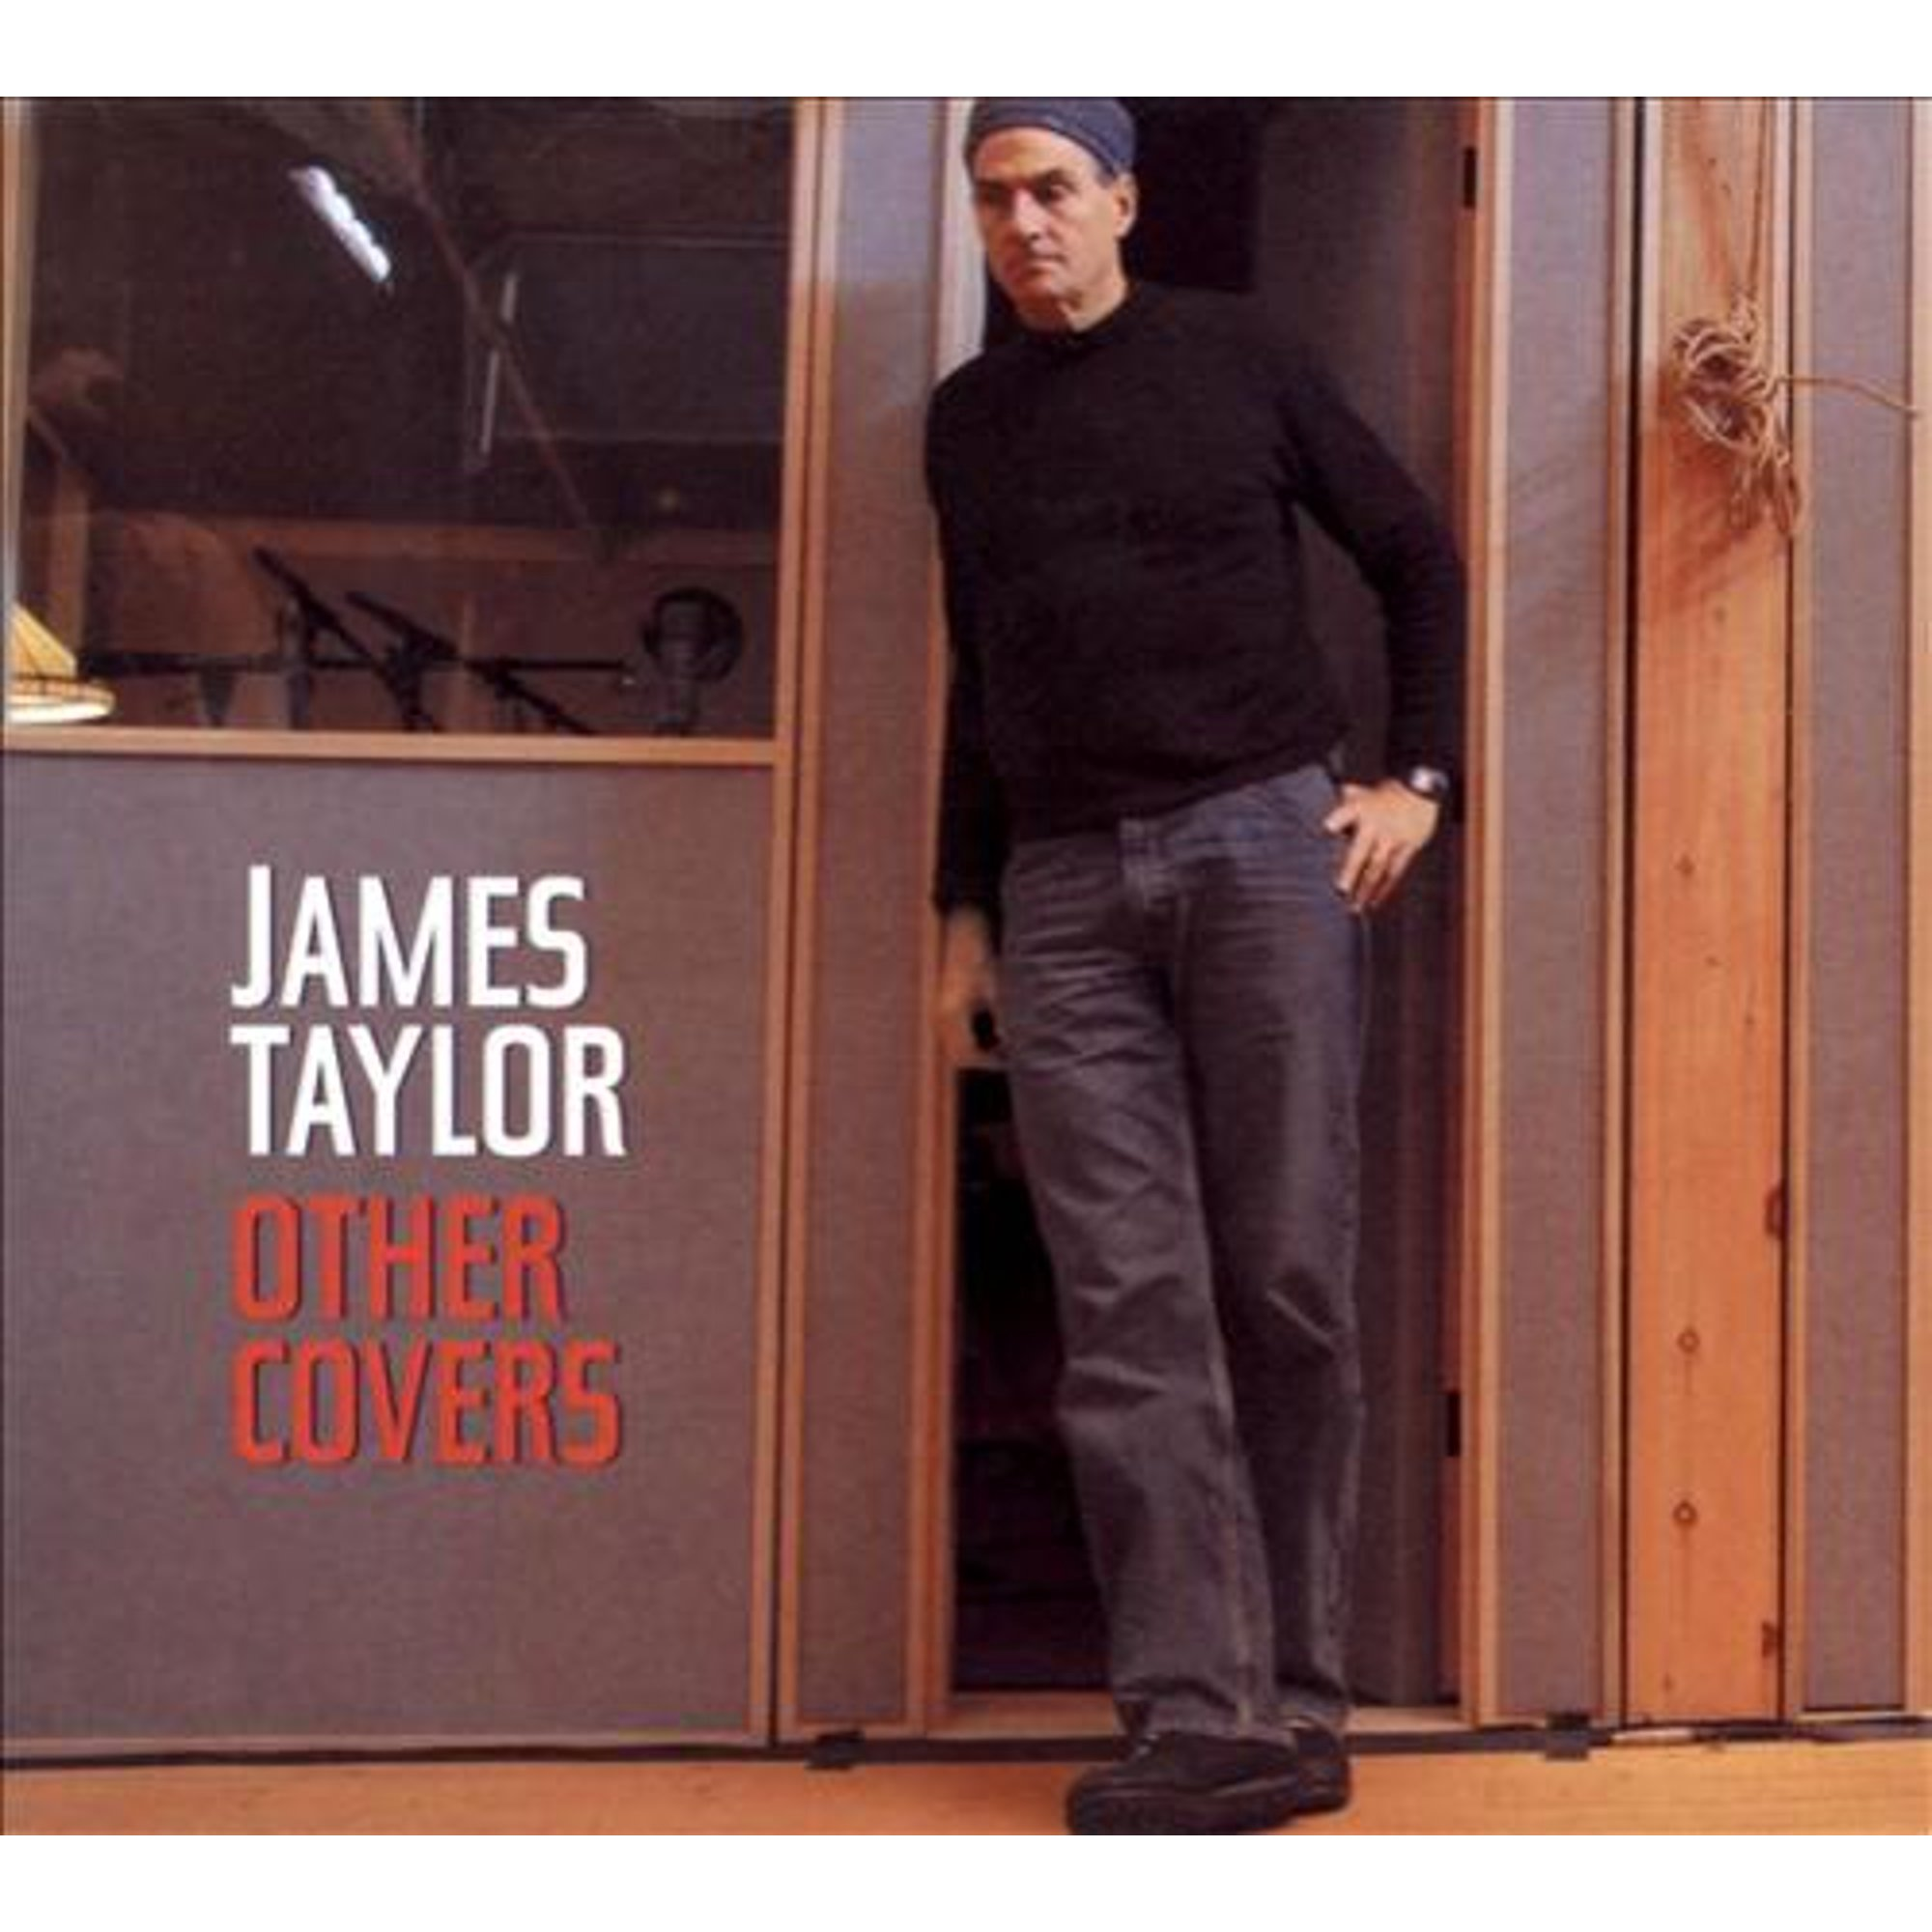 James Taylor (Vocals) Other Covers CD